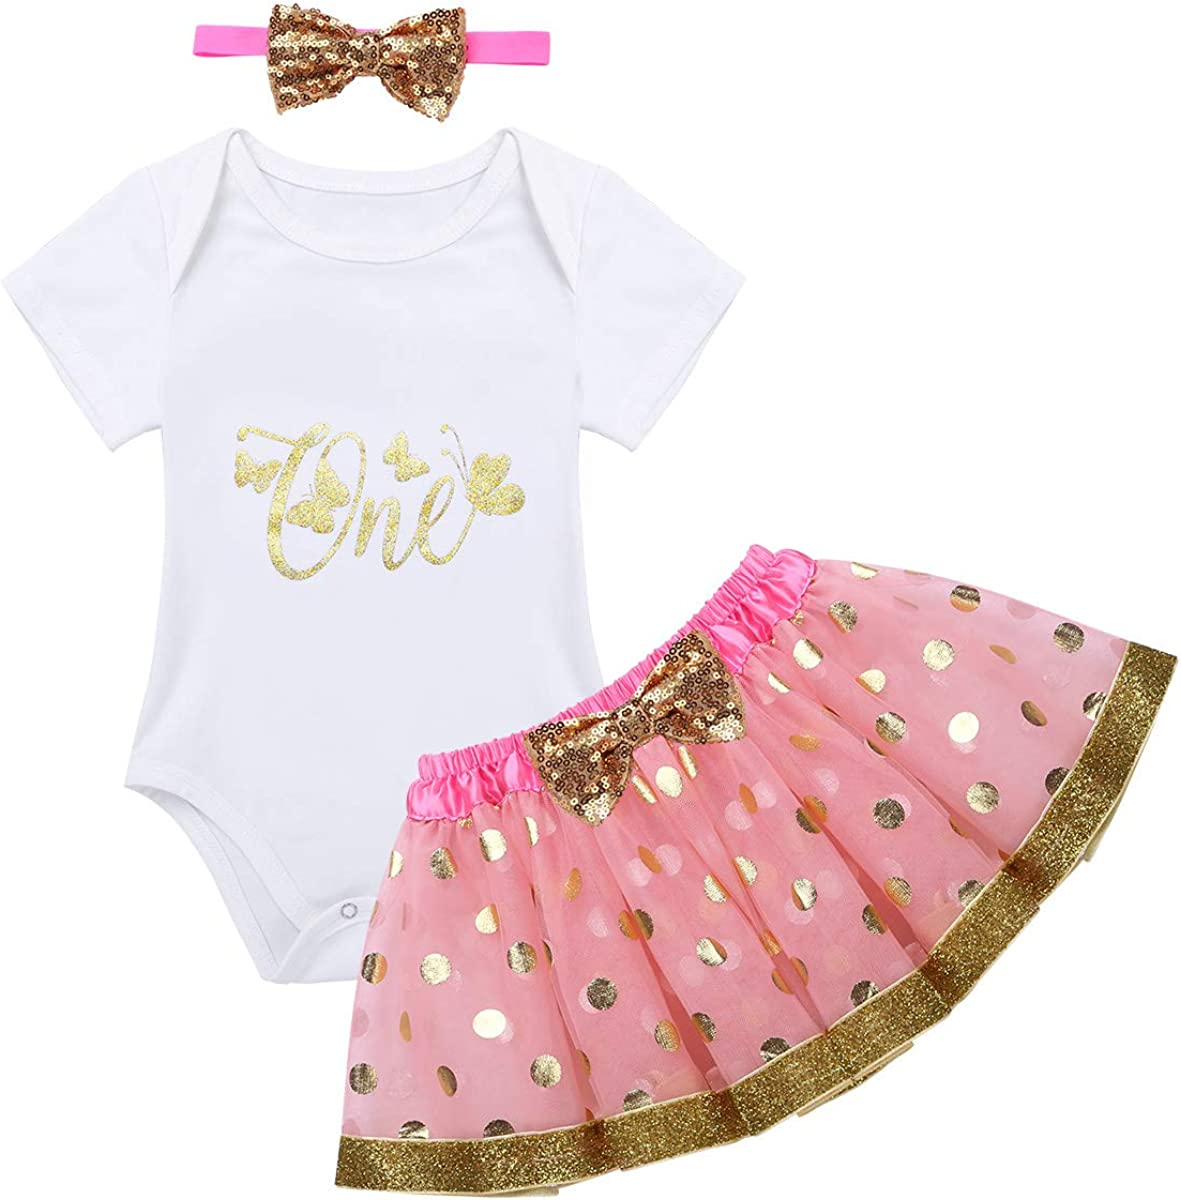 ACSUSS Infant Baby Girls First Birthday Party Outfits Short Sleeves Romper with Tutu Skirt Headband Set